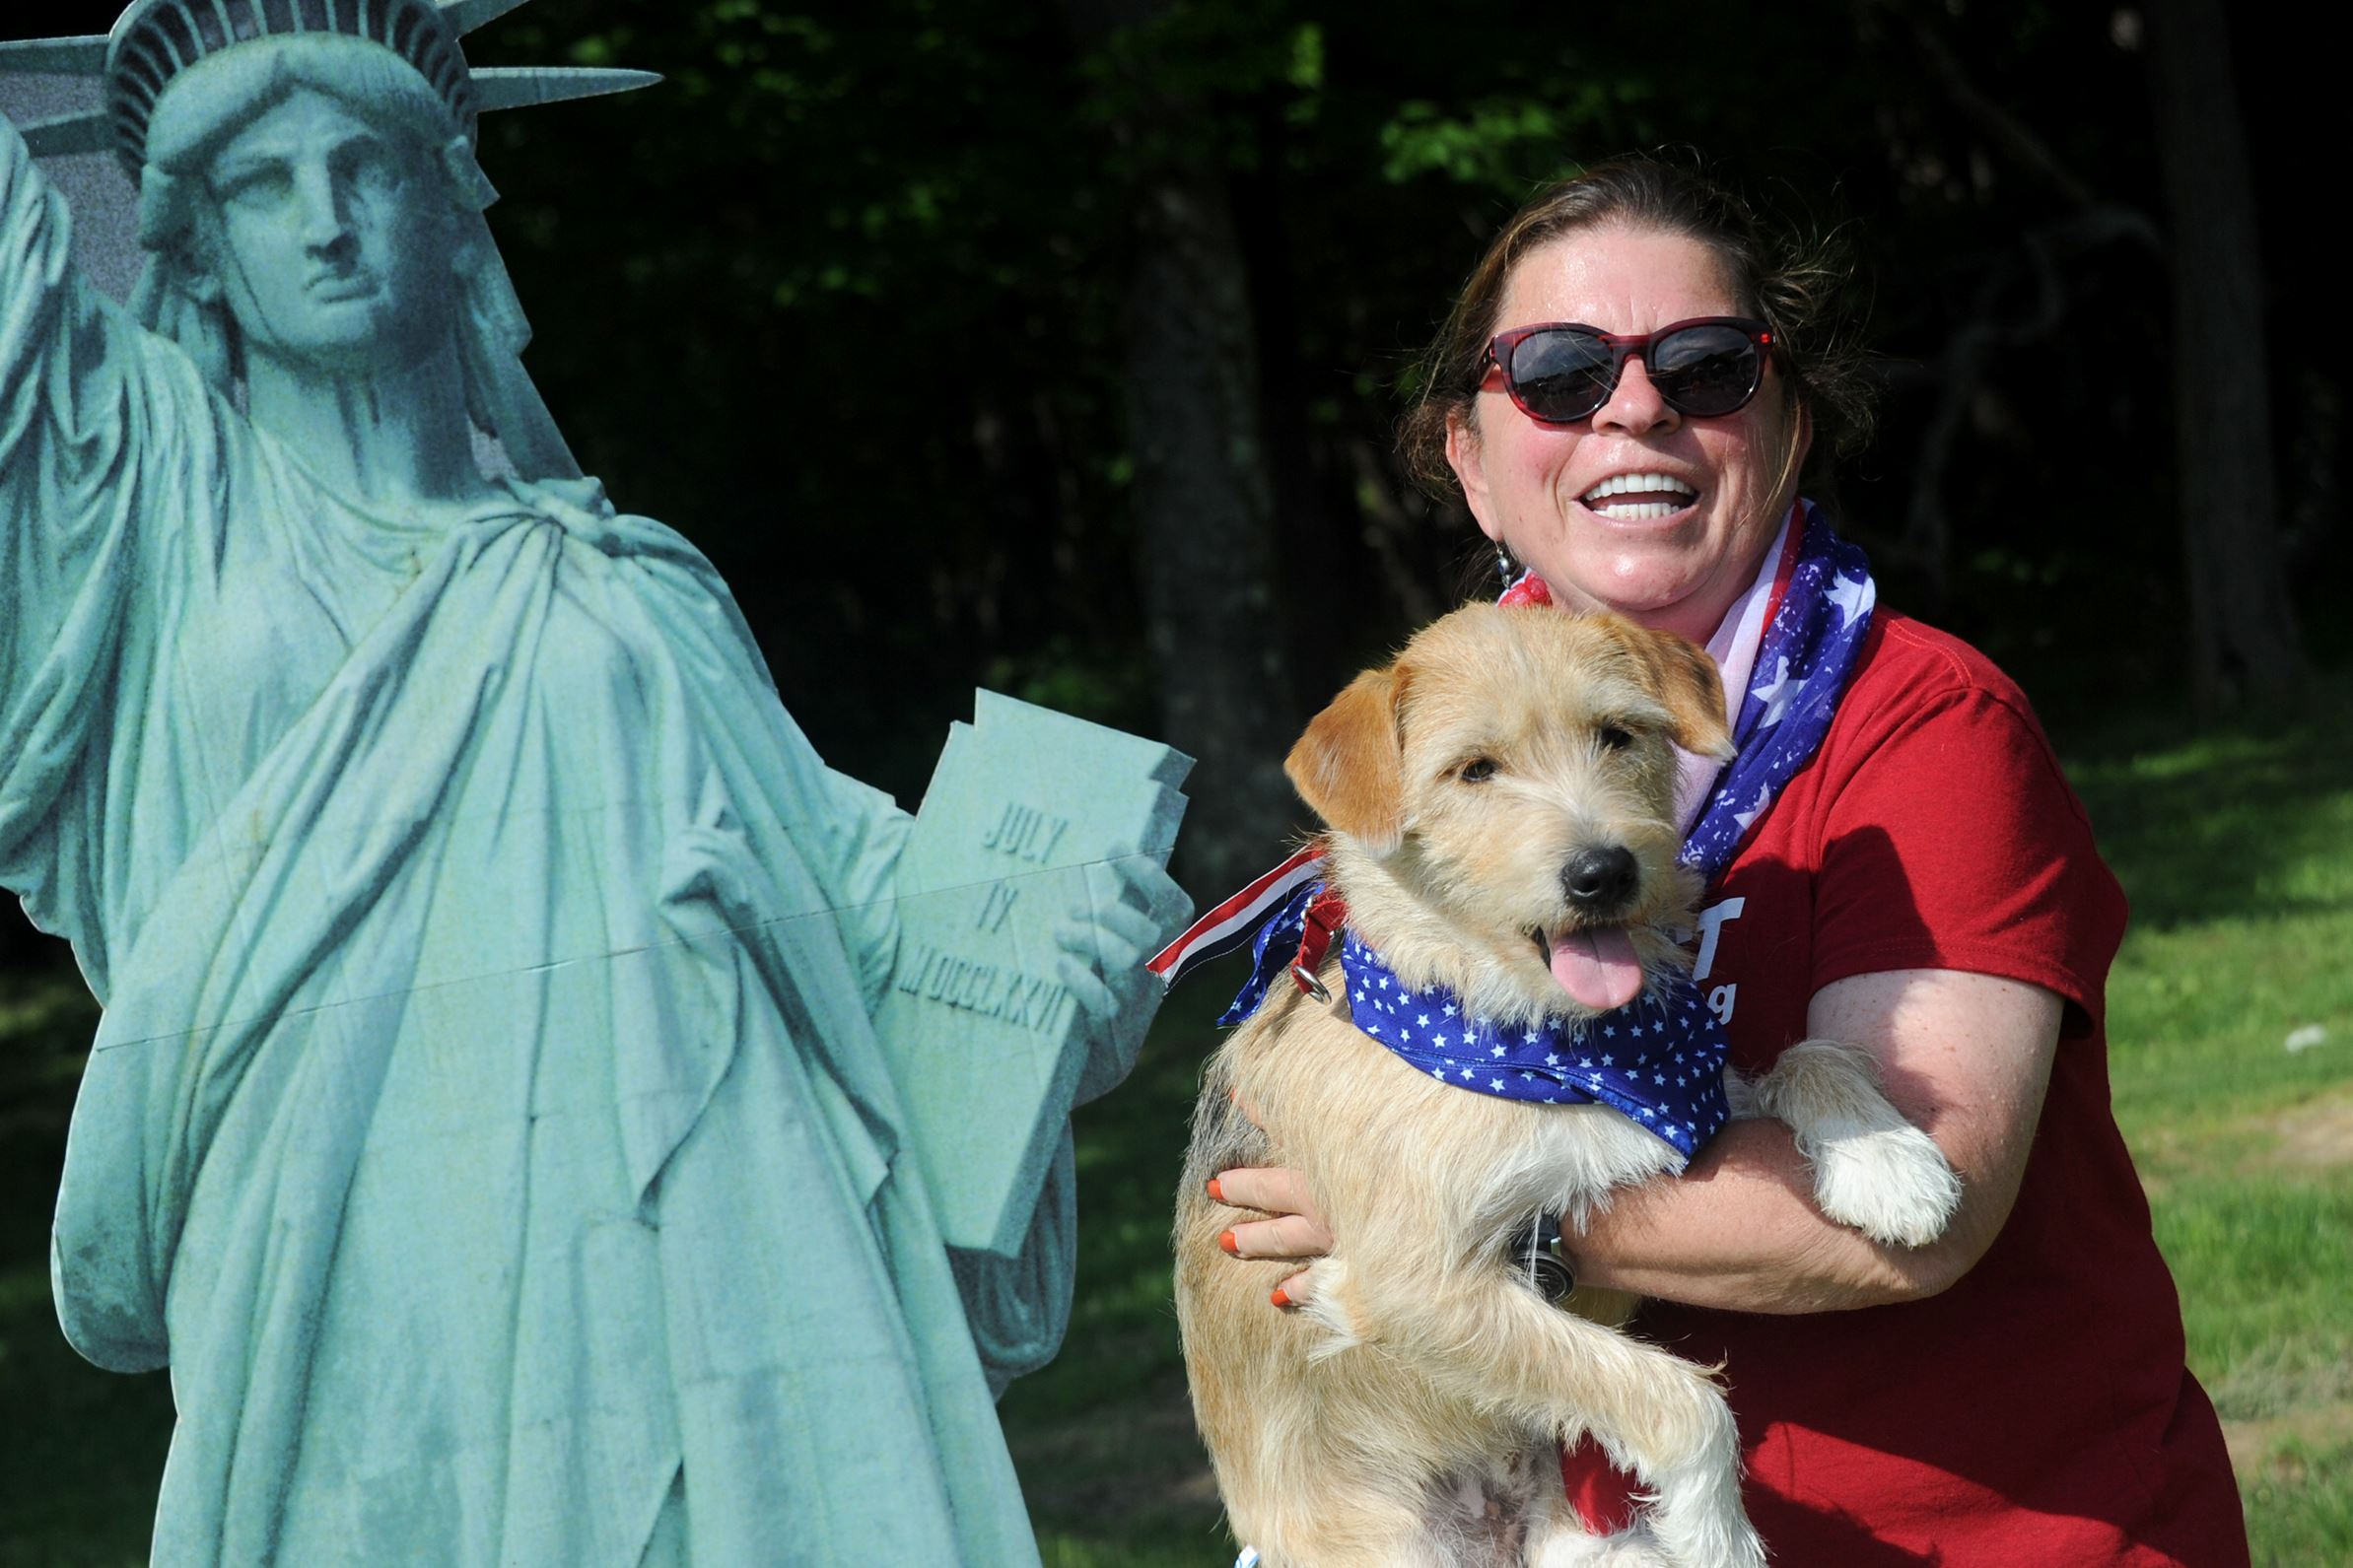 20160528lf-Dogs01 Gretchen Meyer of Gibsonia holds her adopted pup, Jameson, a 15-month-old Terrier mix at the annual Animal Friends Patriotic Pup Parade in North Park on Saturday.